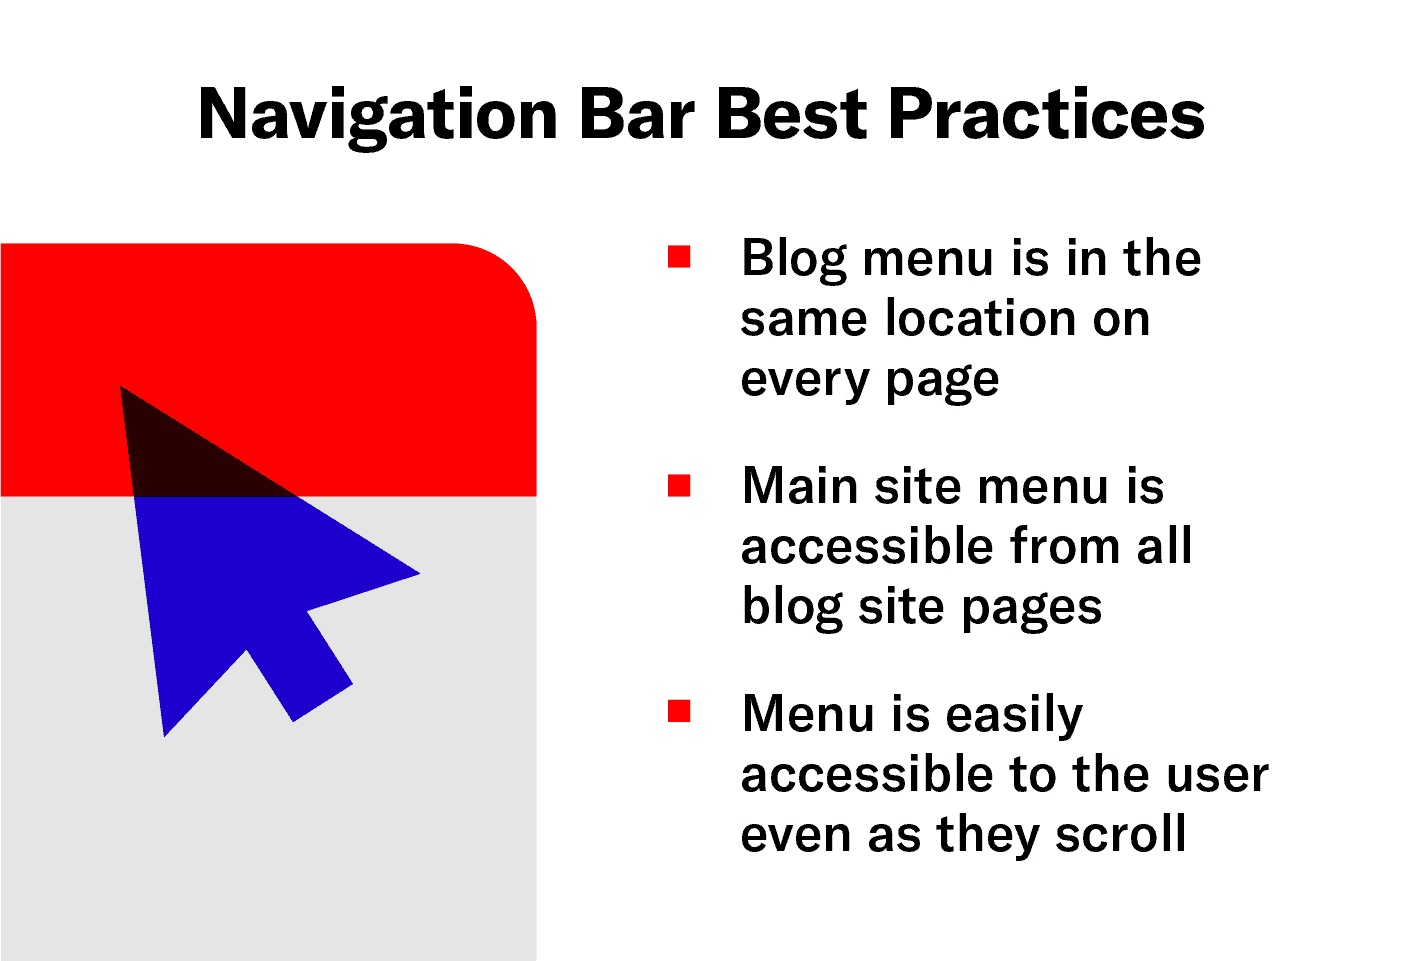 A breakdown of best practices for creating a blog navigation bar.